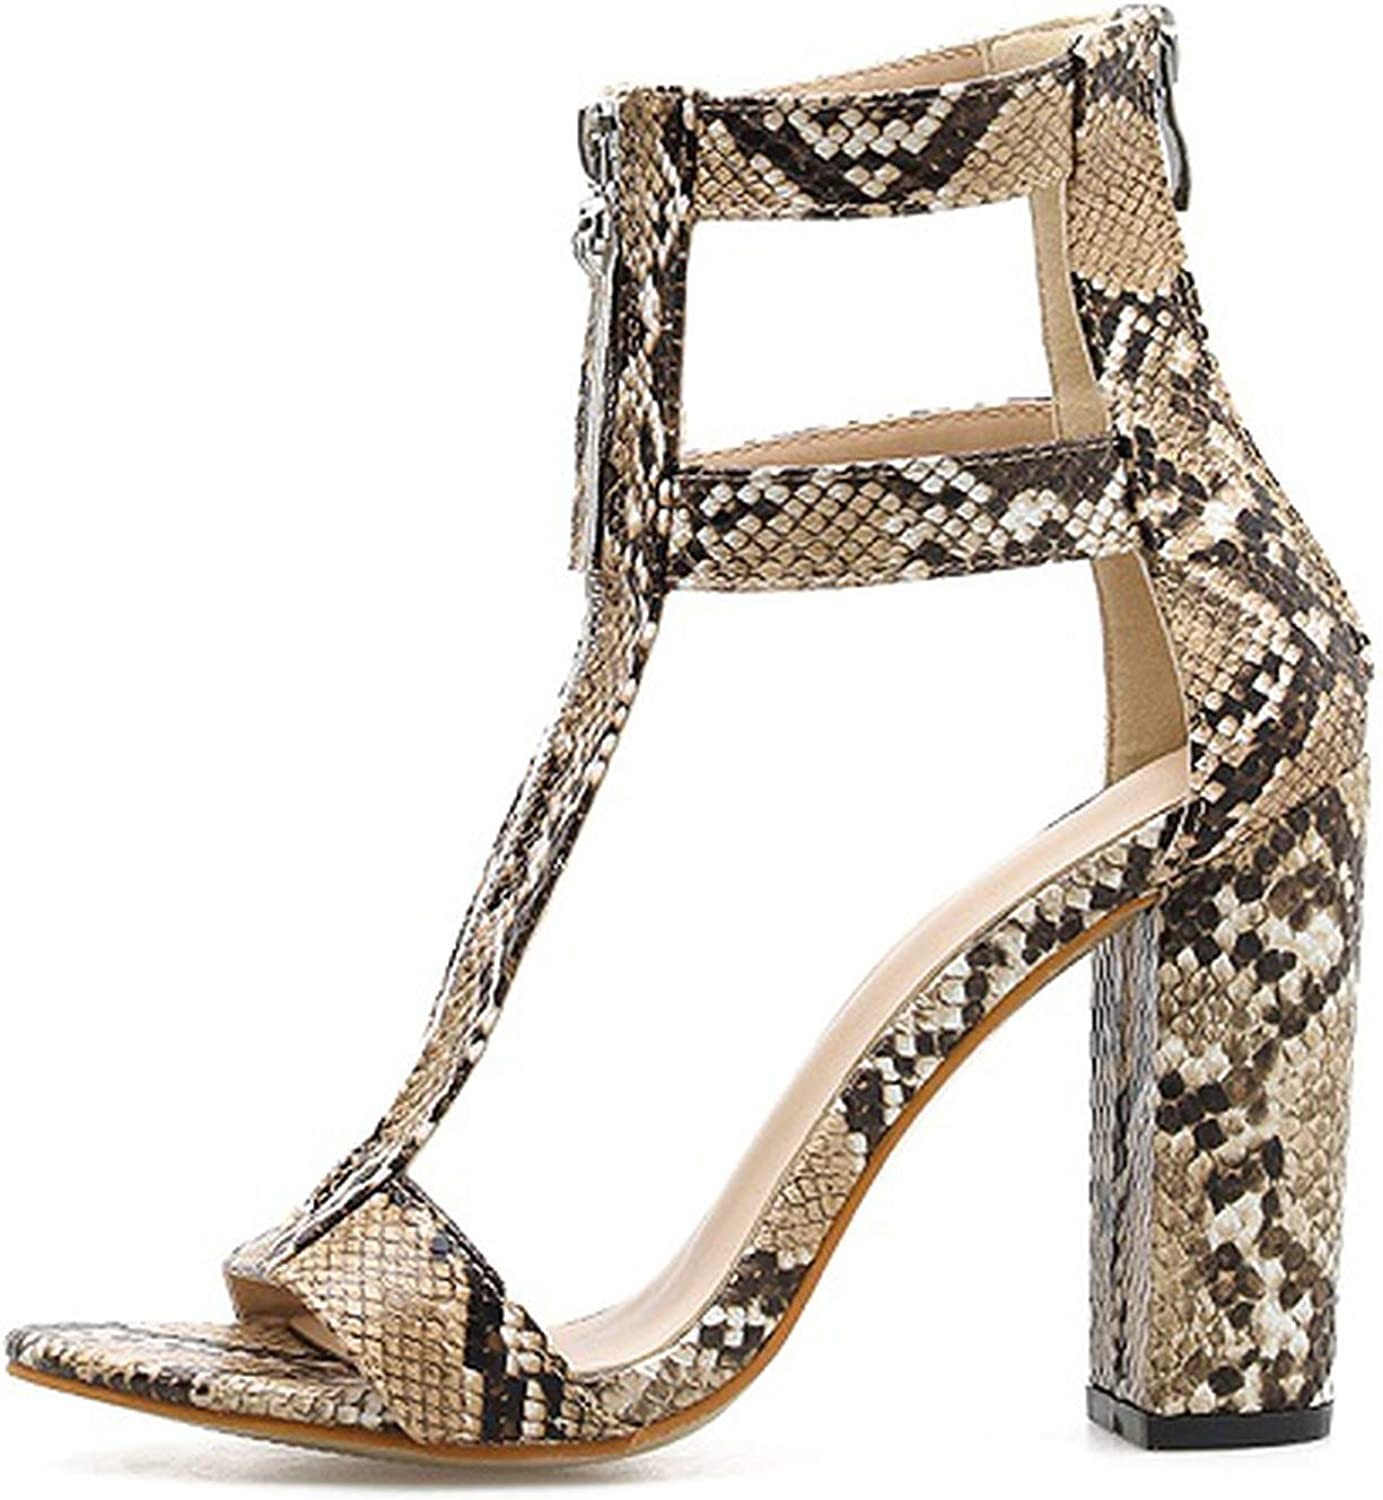 Ches Women Summer Print Serpentine Zipper Sandals Square Heel Sexy Peep Toe Black Gladiator Sandals shoes Size 35-40